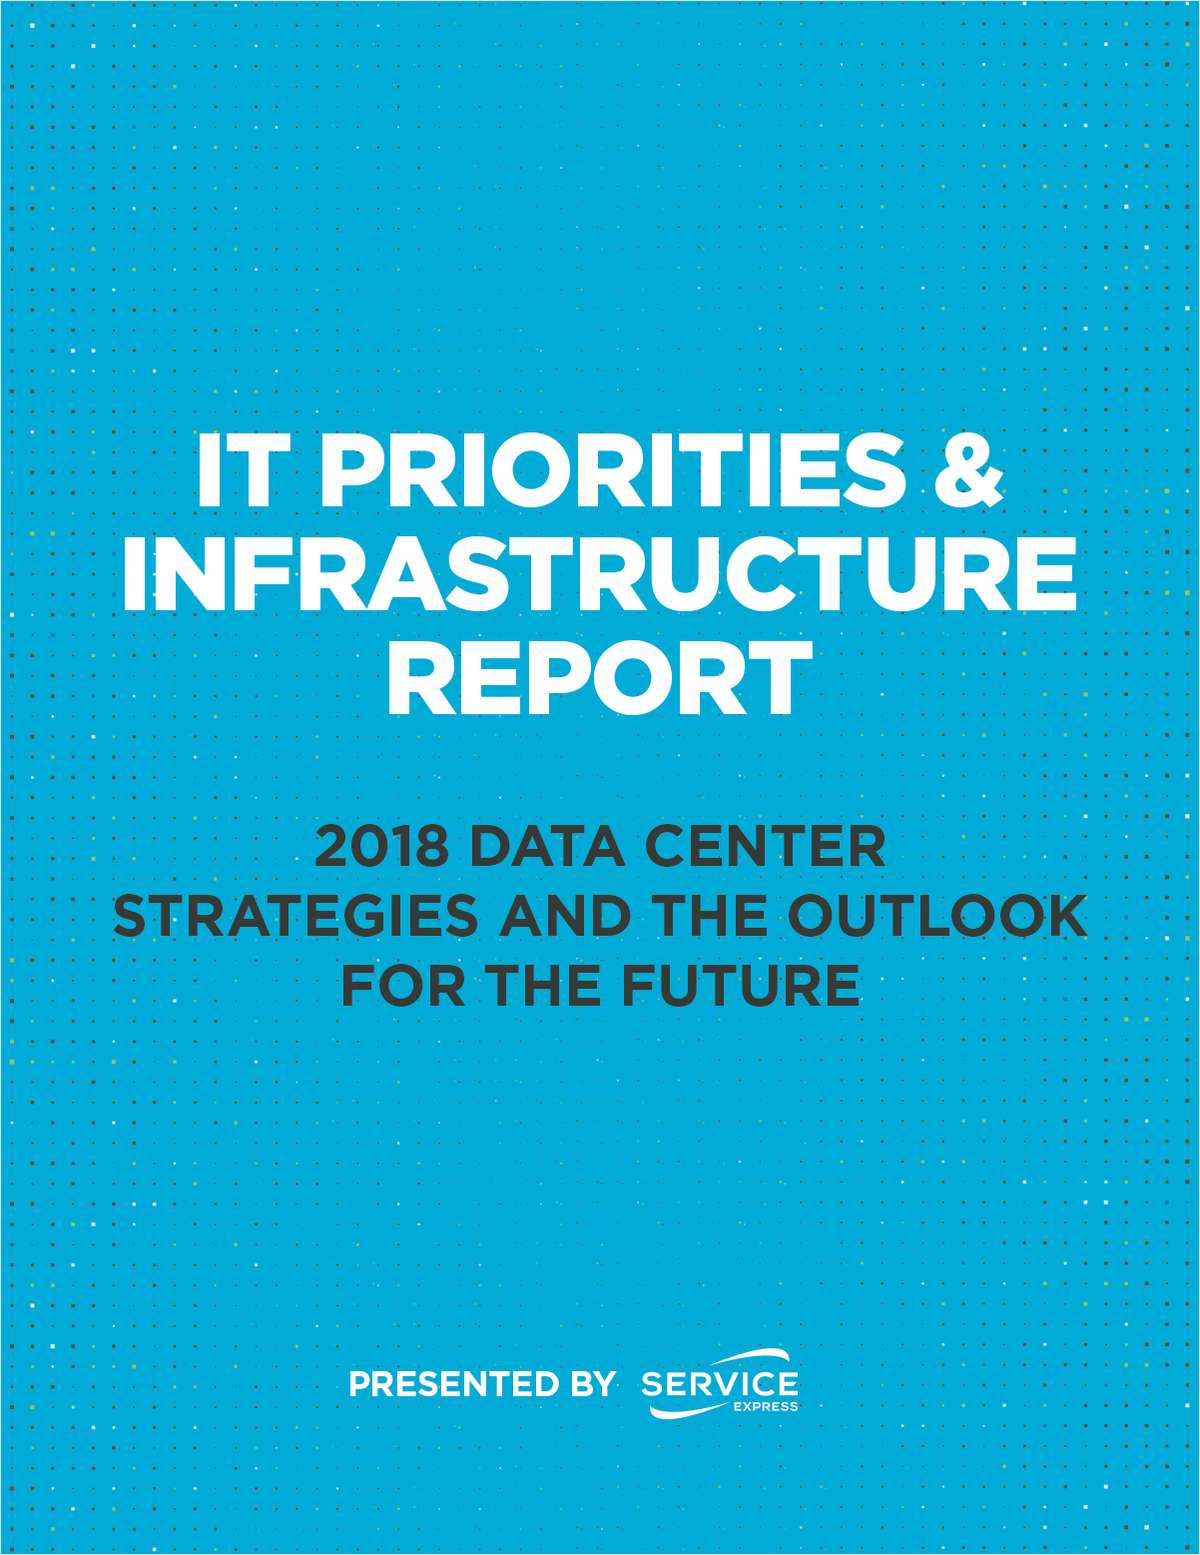 IT Priorities & Infrastructure Report: 2018 Data Center Strategies and the Outlook for the Future